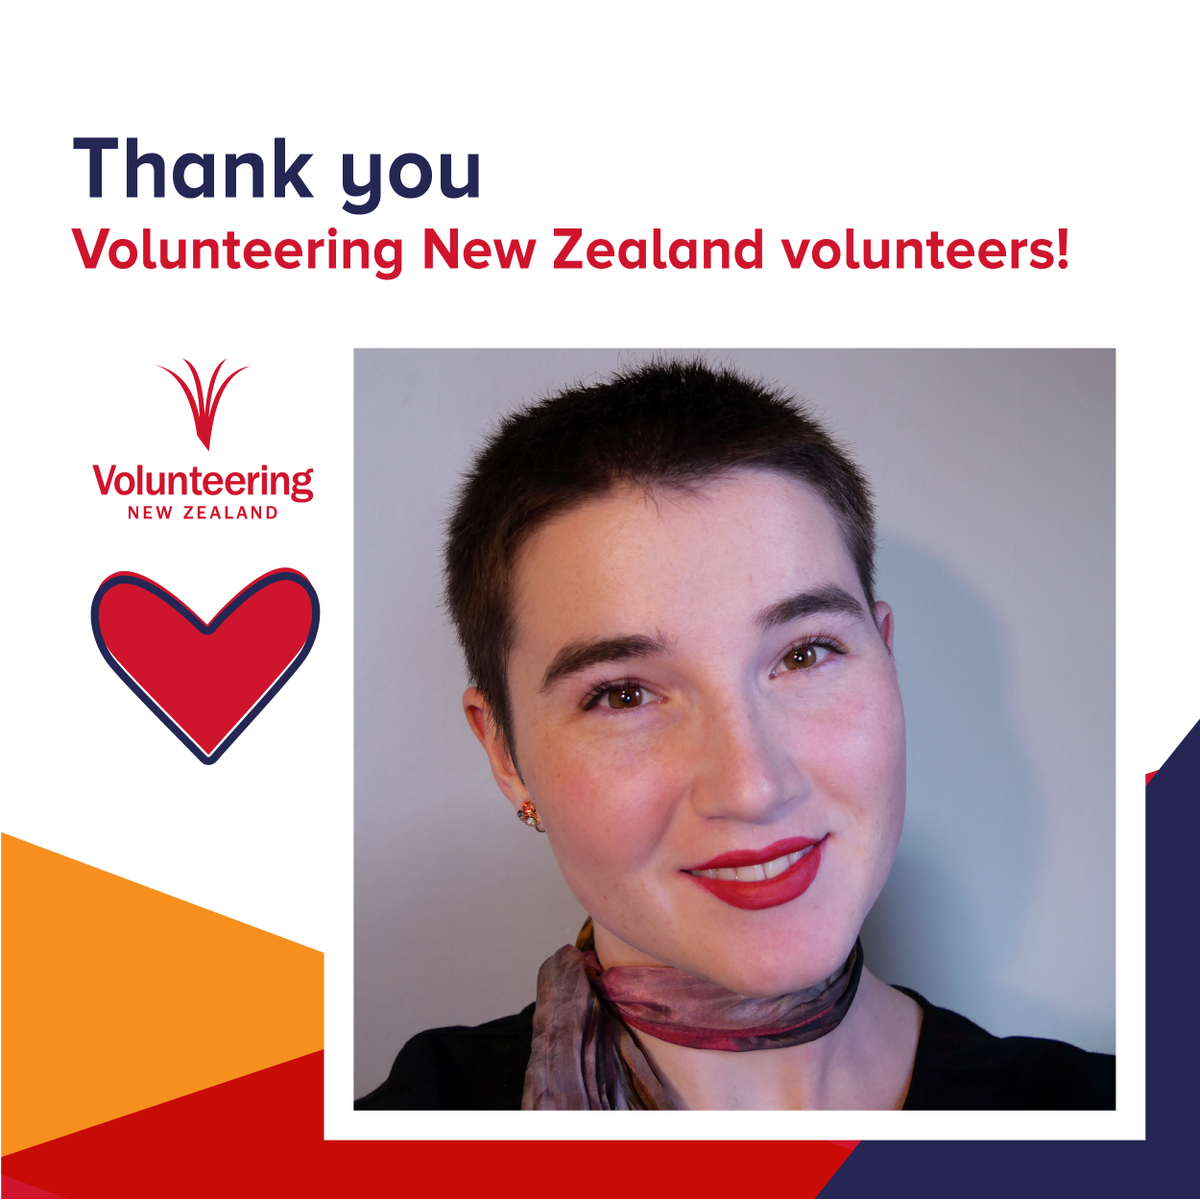 This is a shout out to effort and video skills of one of our volunteers, Emily!  Emily is Volunteering New Zealand's Video and Media Advisor. Thank you Emily for your incredible work ethic, creativity and kindness.  #AotearoaOfKindness https://t.co/xtfJ9ZcVuF